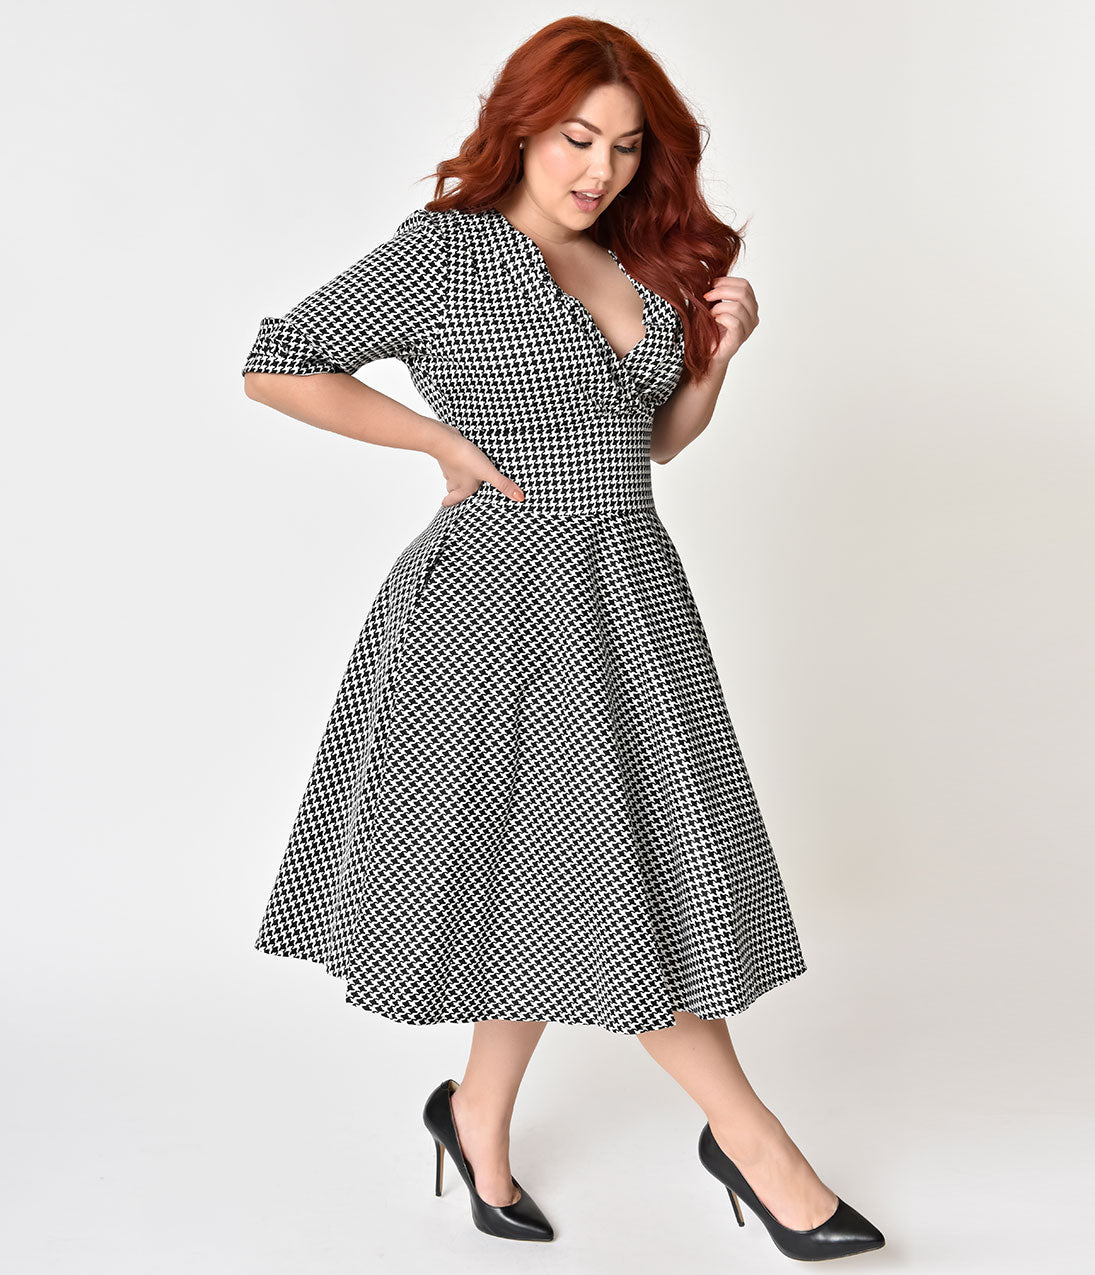 Plus Size Swing Dresses, Vintage Dresses Unique Vintage Plus Size 1950S Black  White Houndstooth Delores Swing Dress With Sleeves $98.00 AT vintagedancer.com